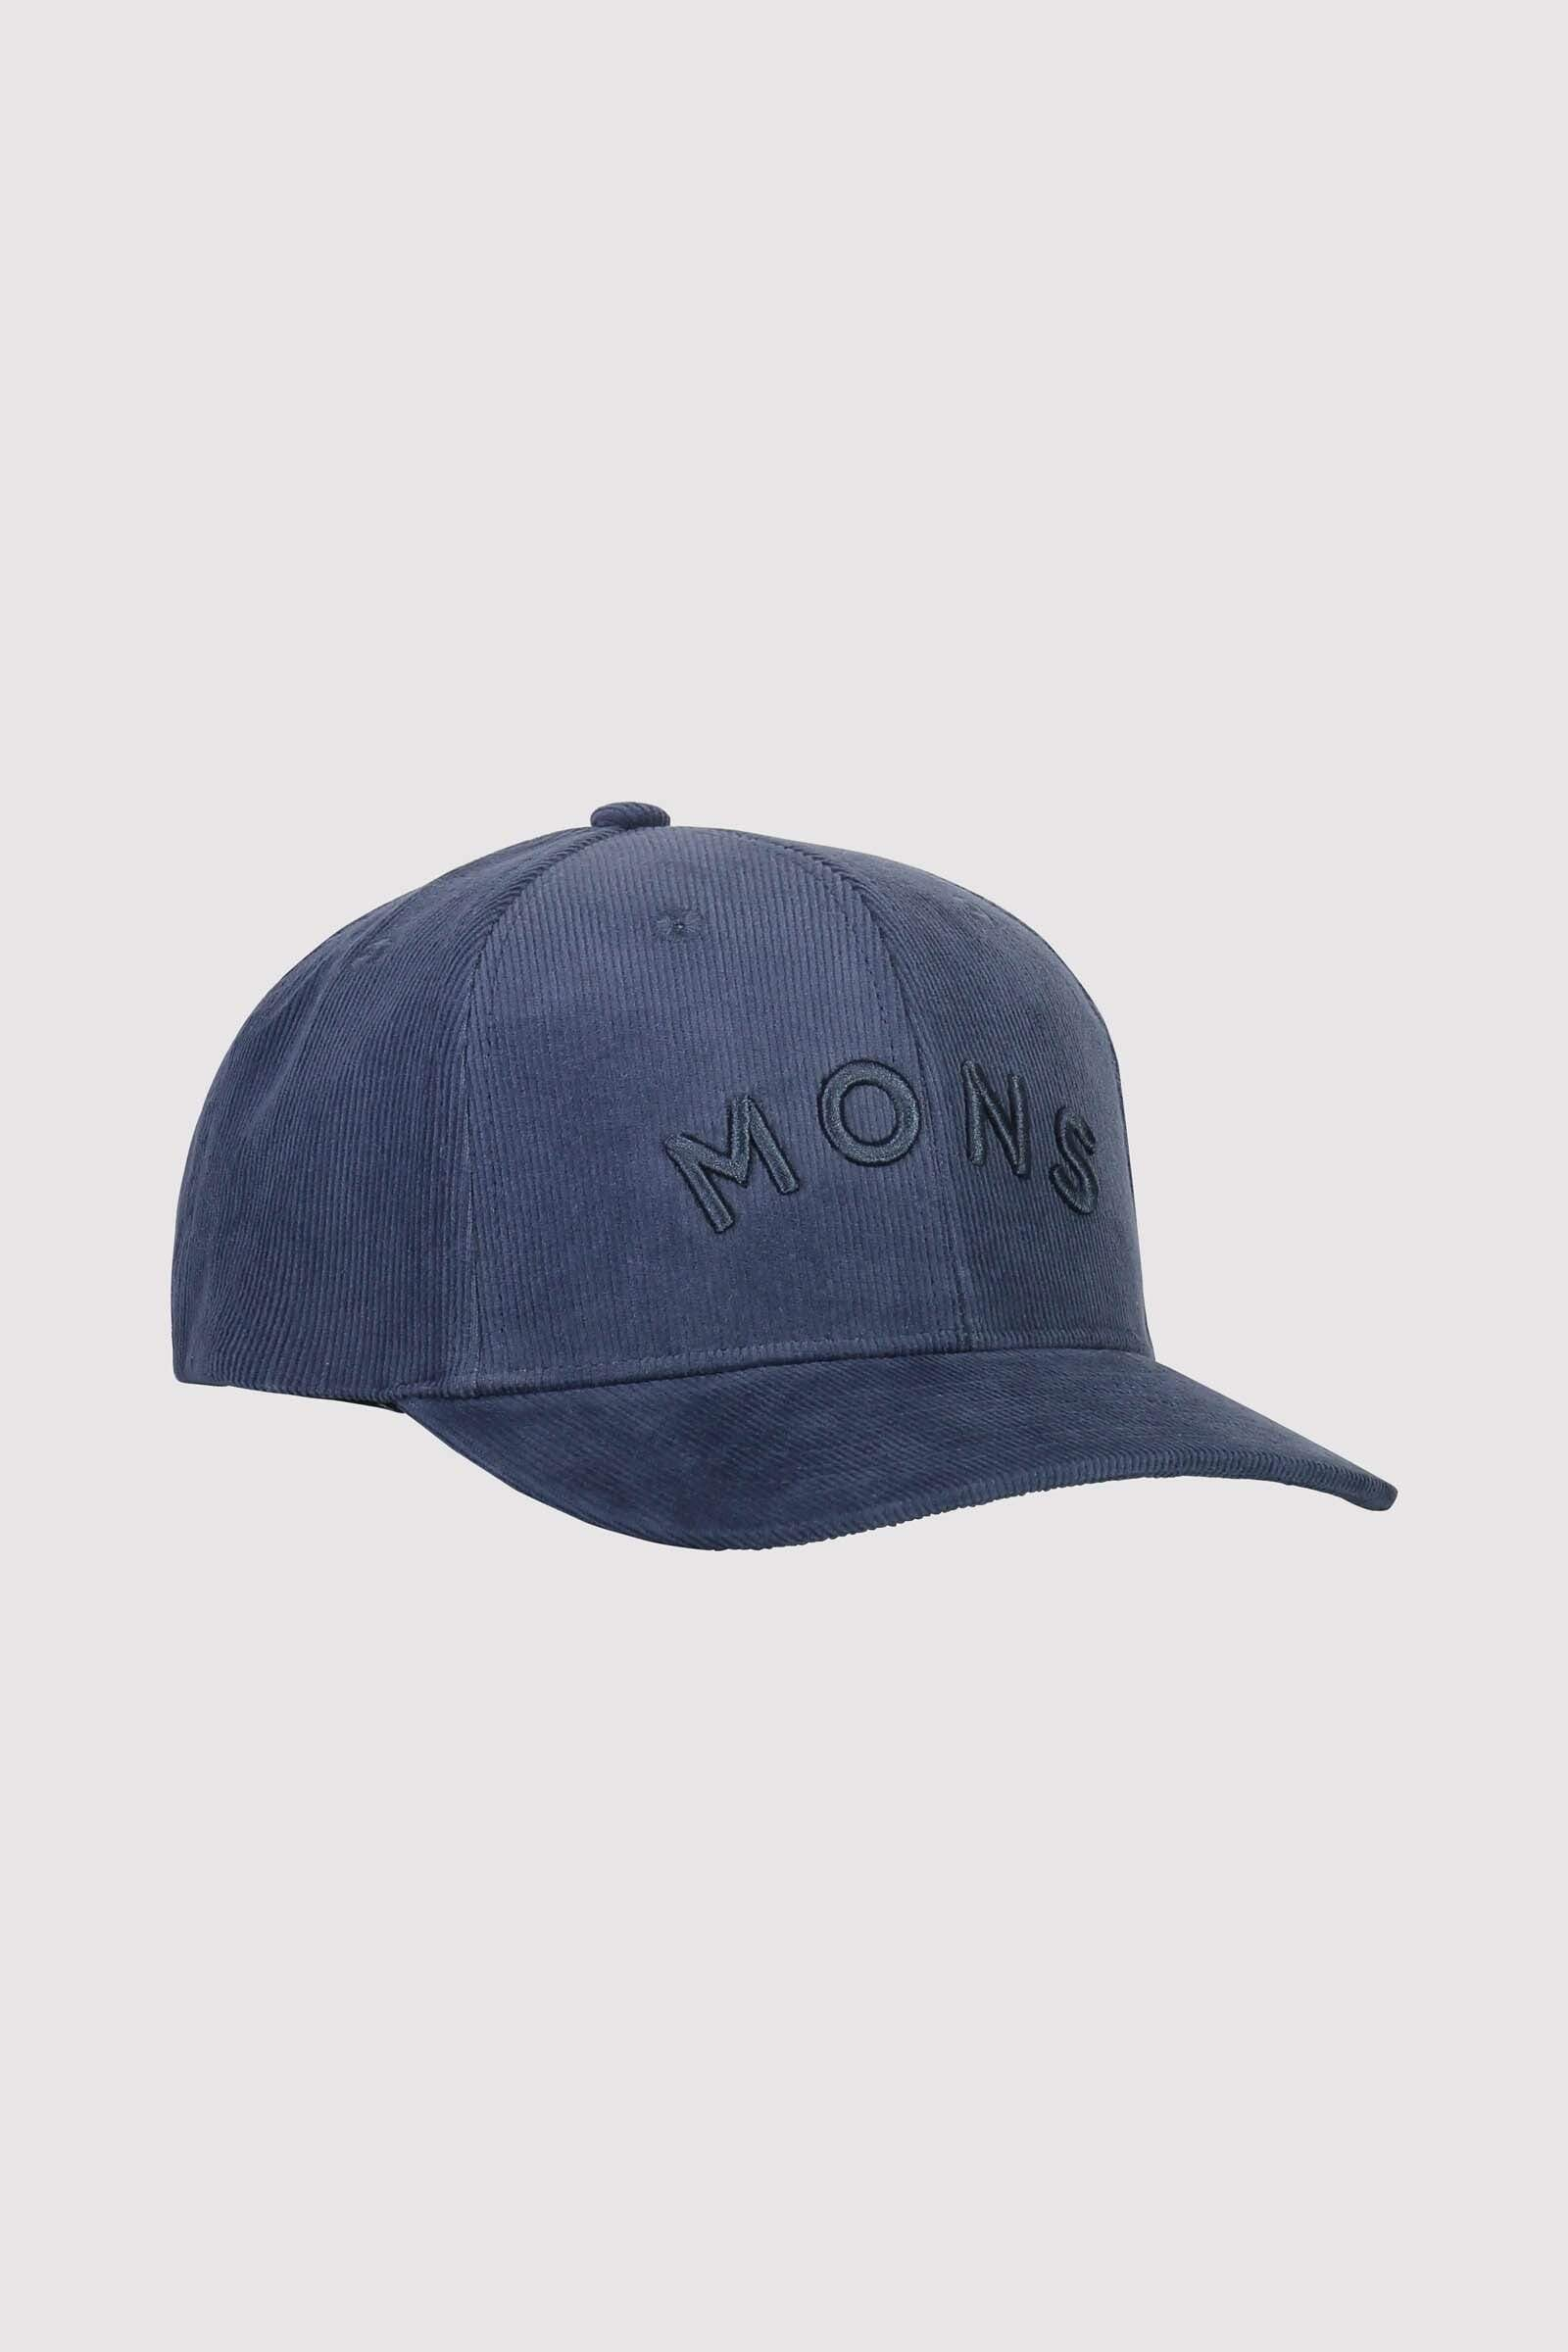 BF Corduroy Ball Cap - Dark Denim